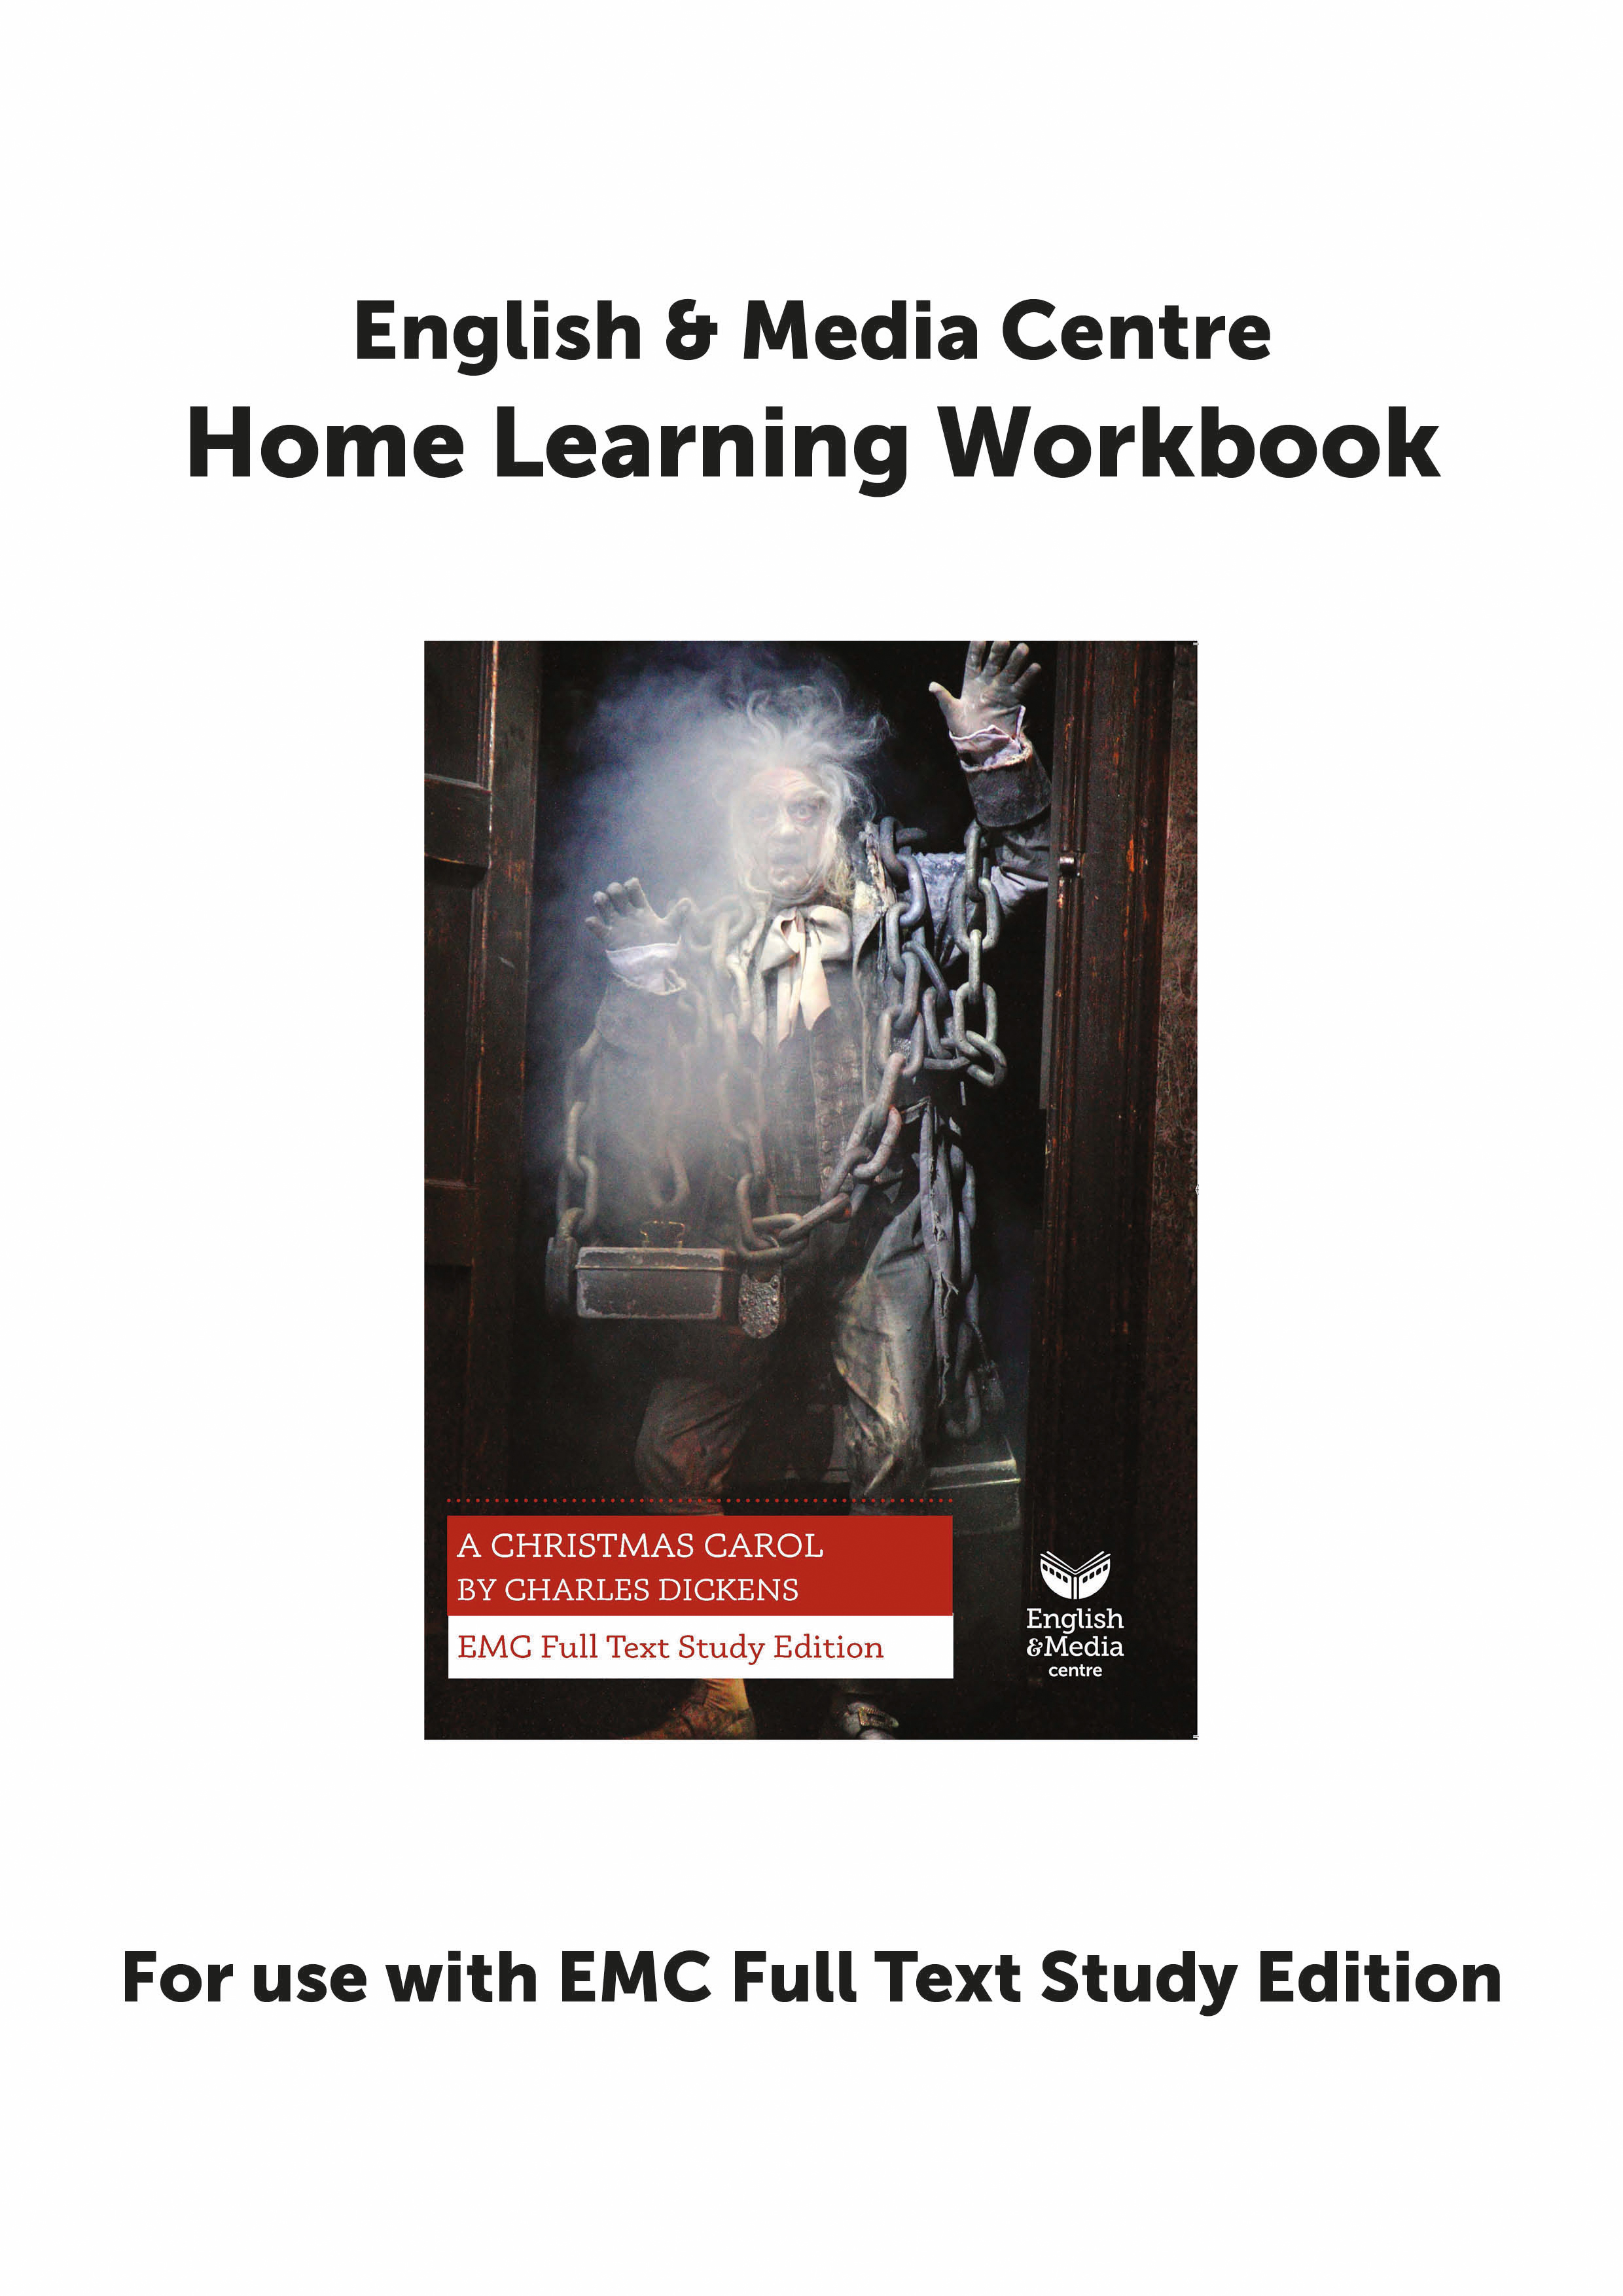 Cover image for Home Learning Workbook – A Christmas Carol